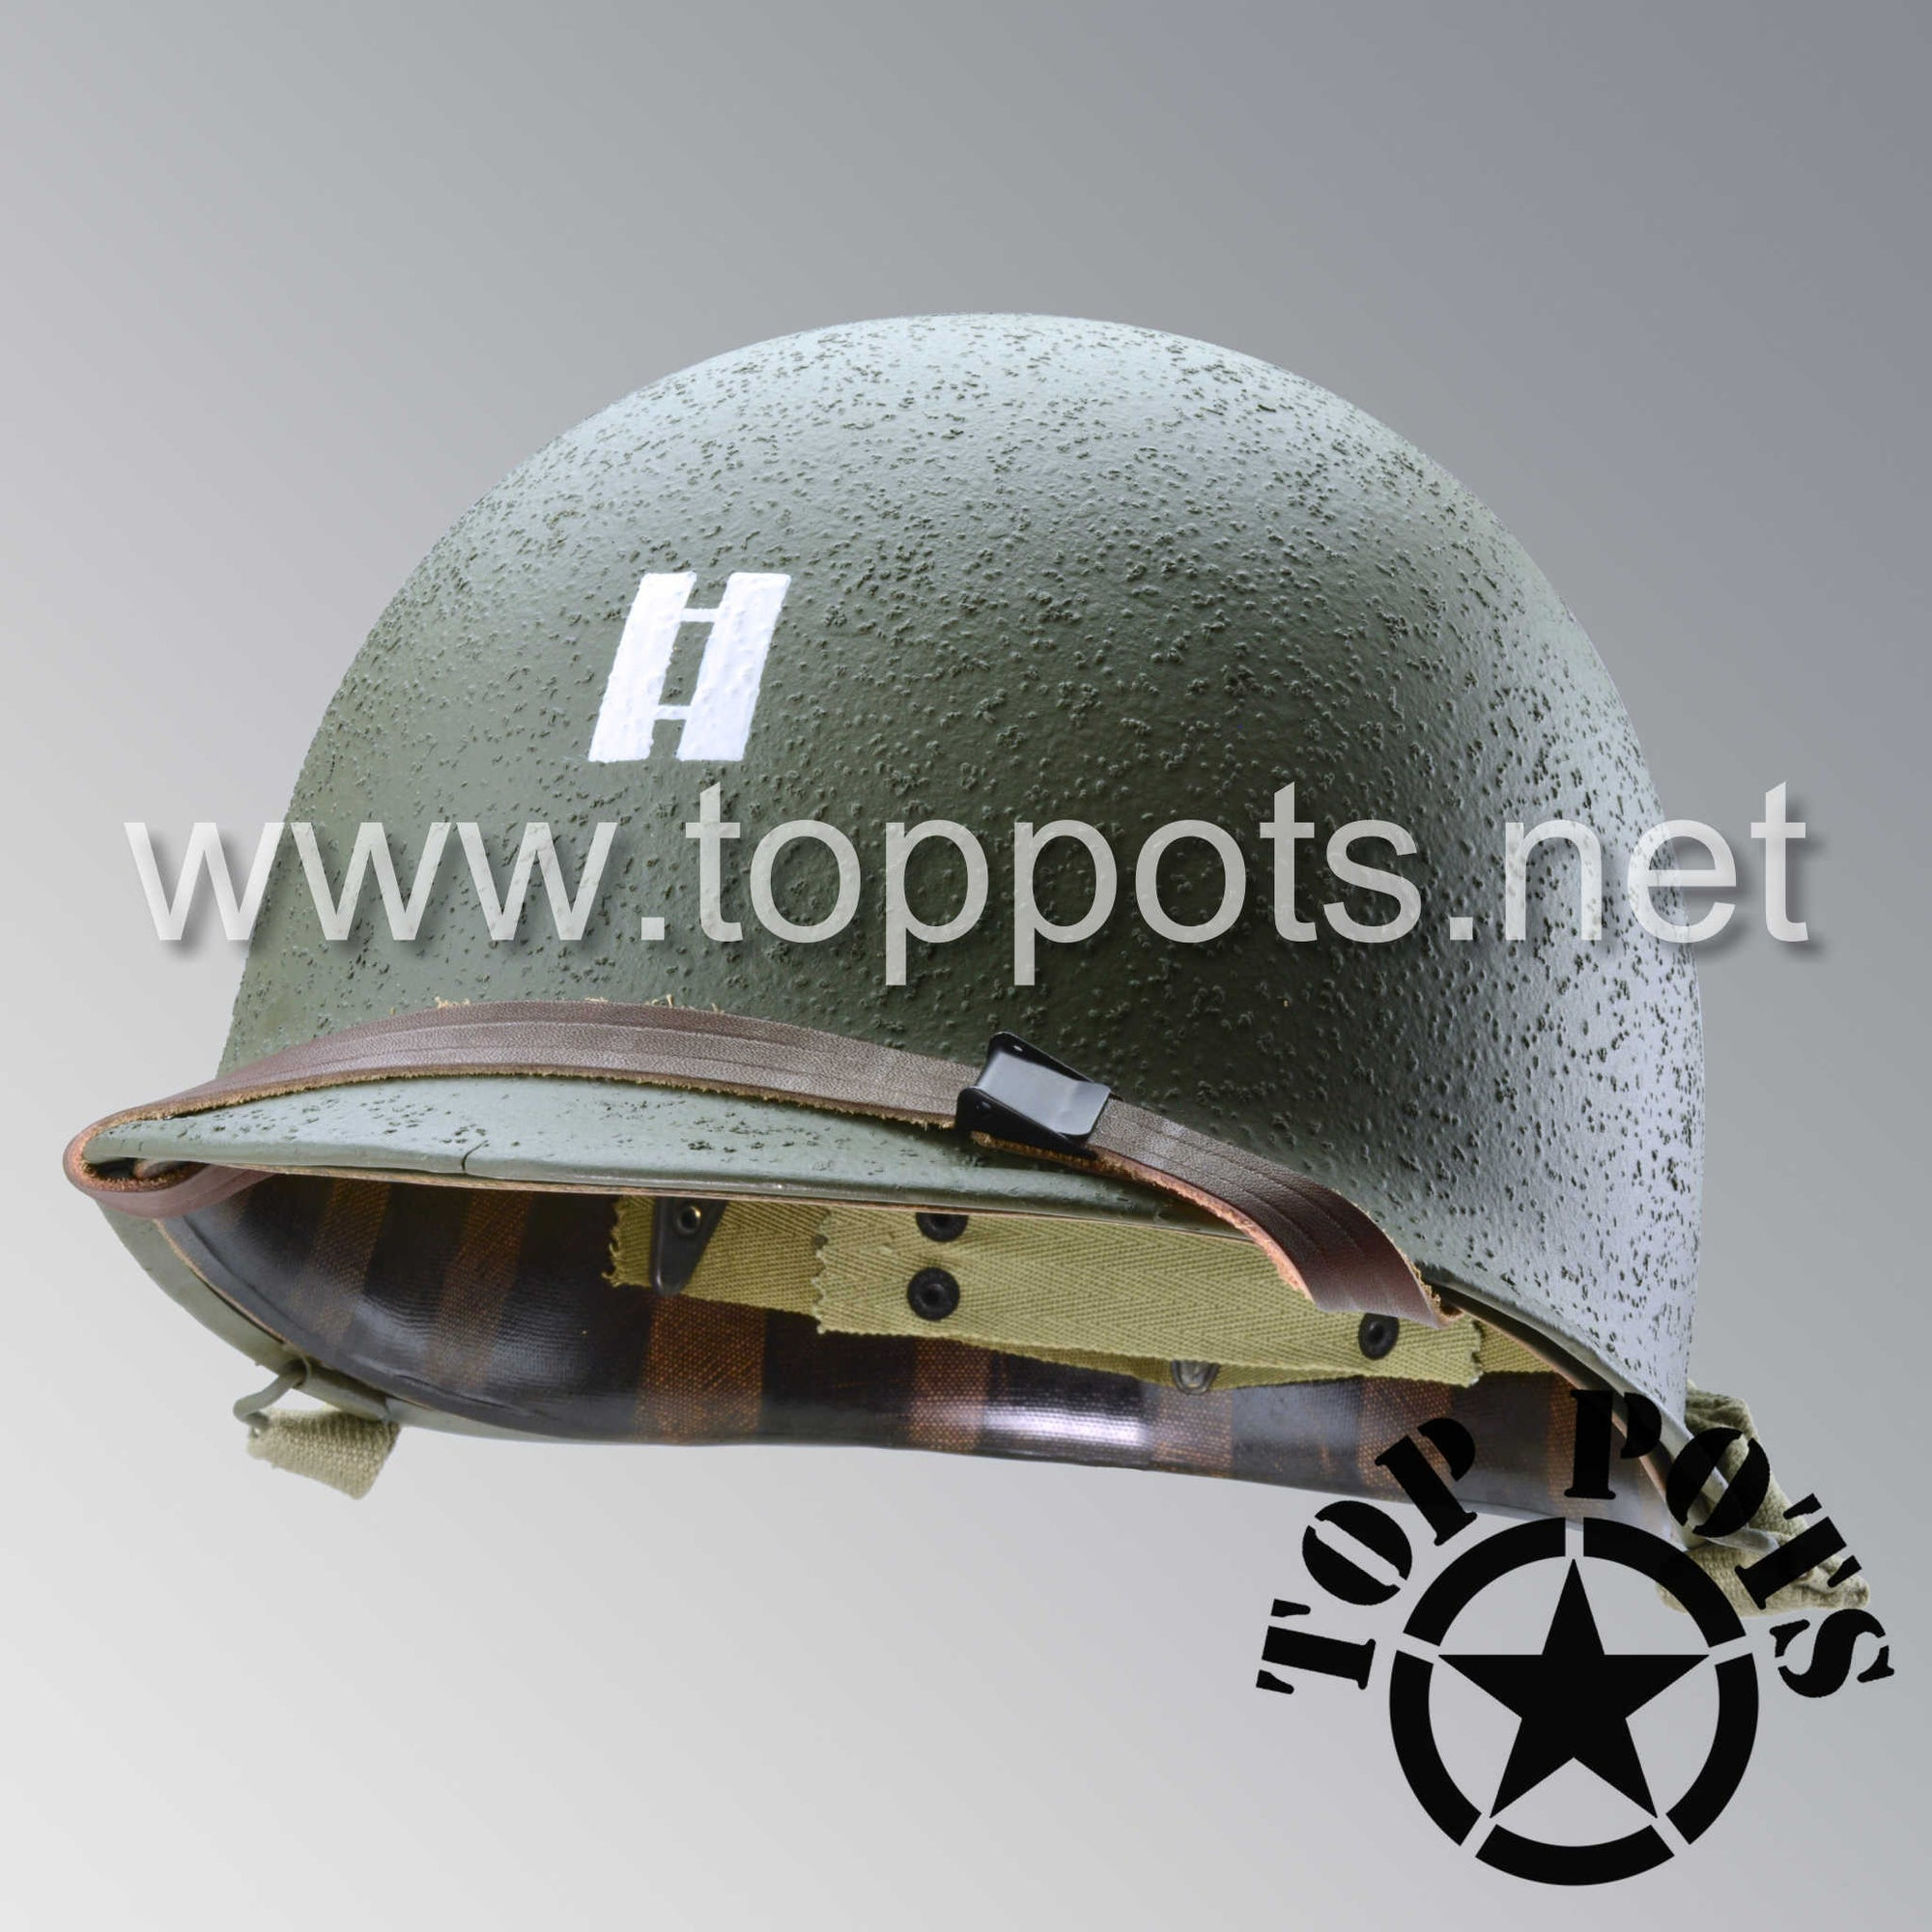 Image 1 of WWII US Army Restored Original M1 Infantry Helmet Swivel Bale Shell and Liner with 2nd Ranger Captain Miller Rank and Leadership Stripe